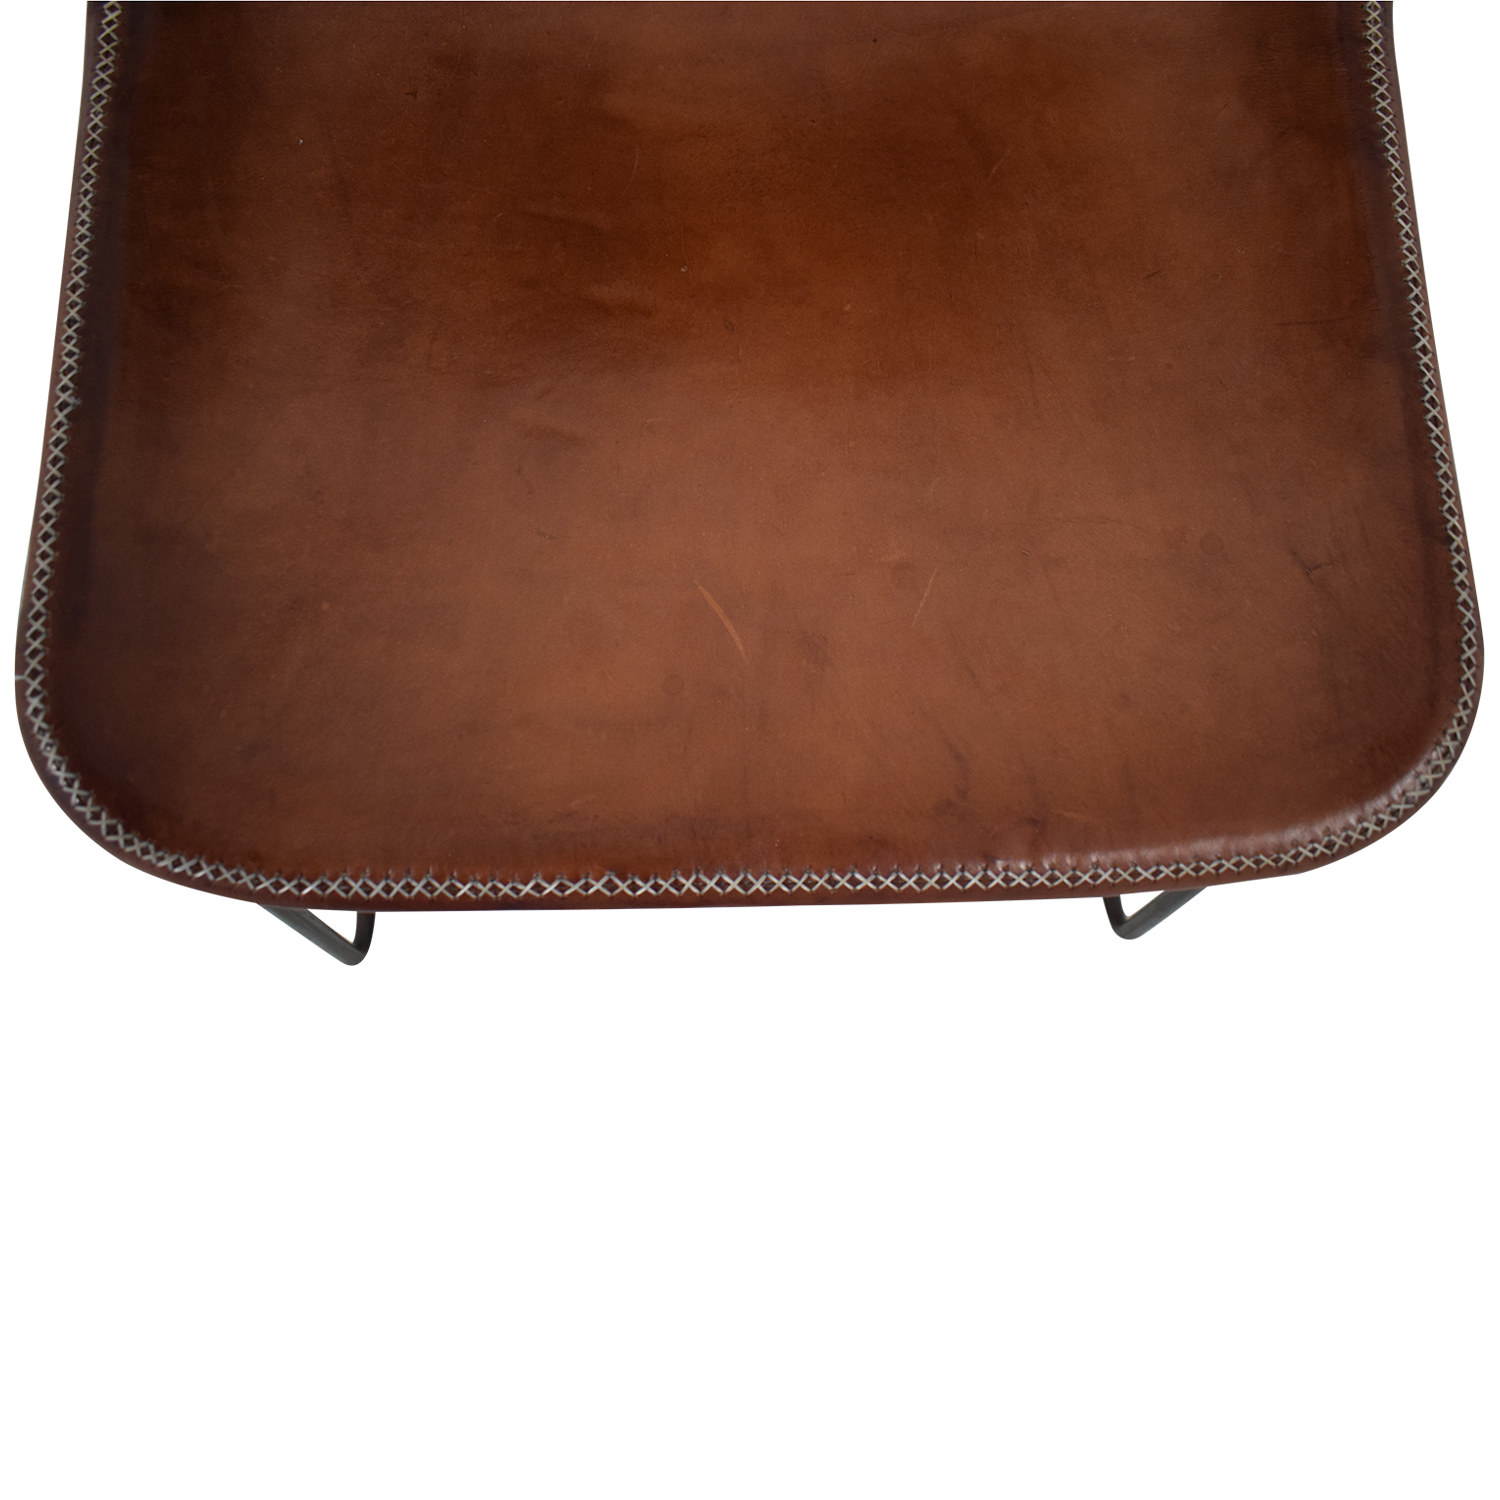 ABC Carpet & Home ABC Carpet & Home Giron Brown Leather Chair second hand